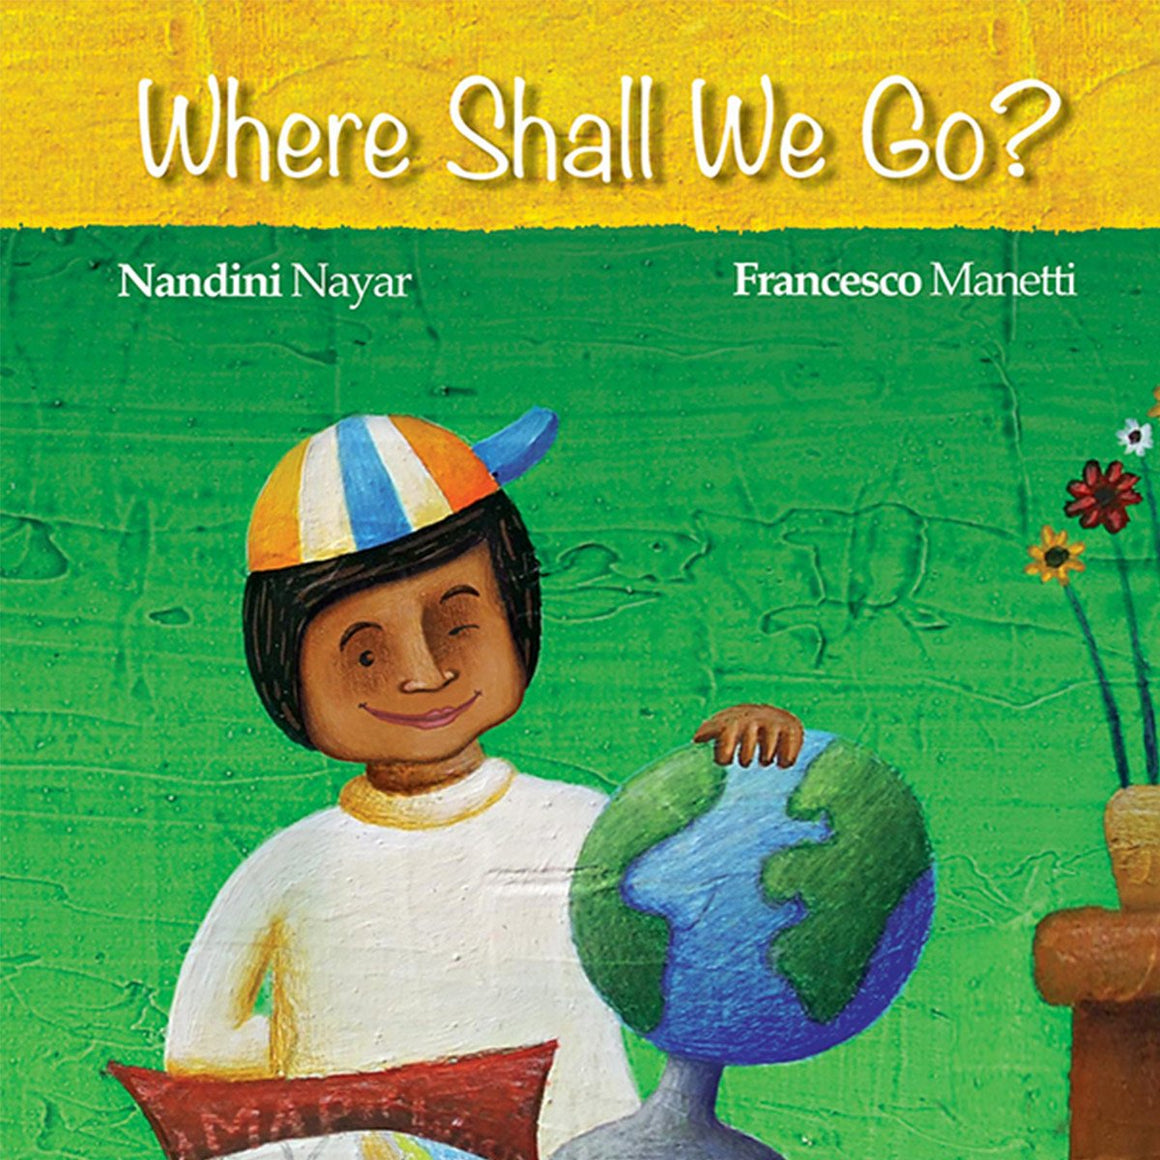 Where Shall We Go? - by Nandini Nayar | Free Shipping - Shumee